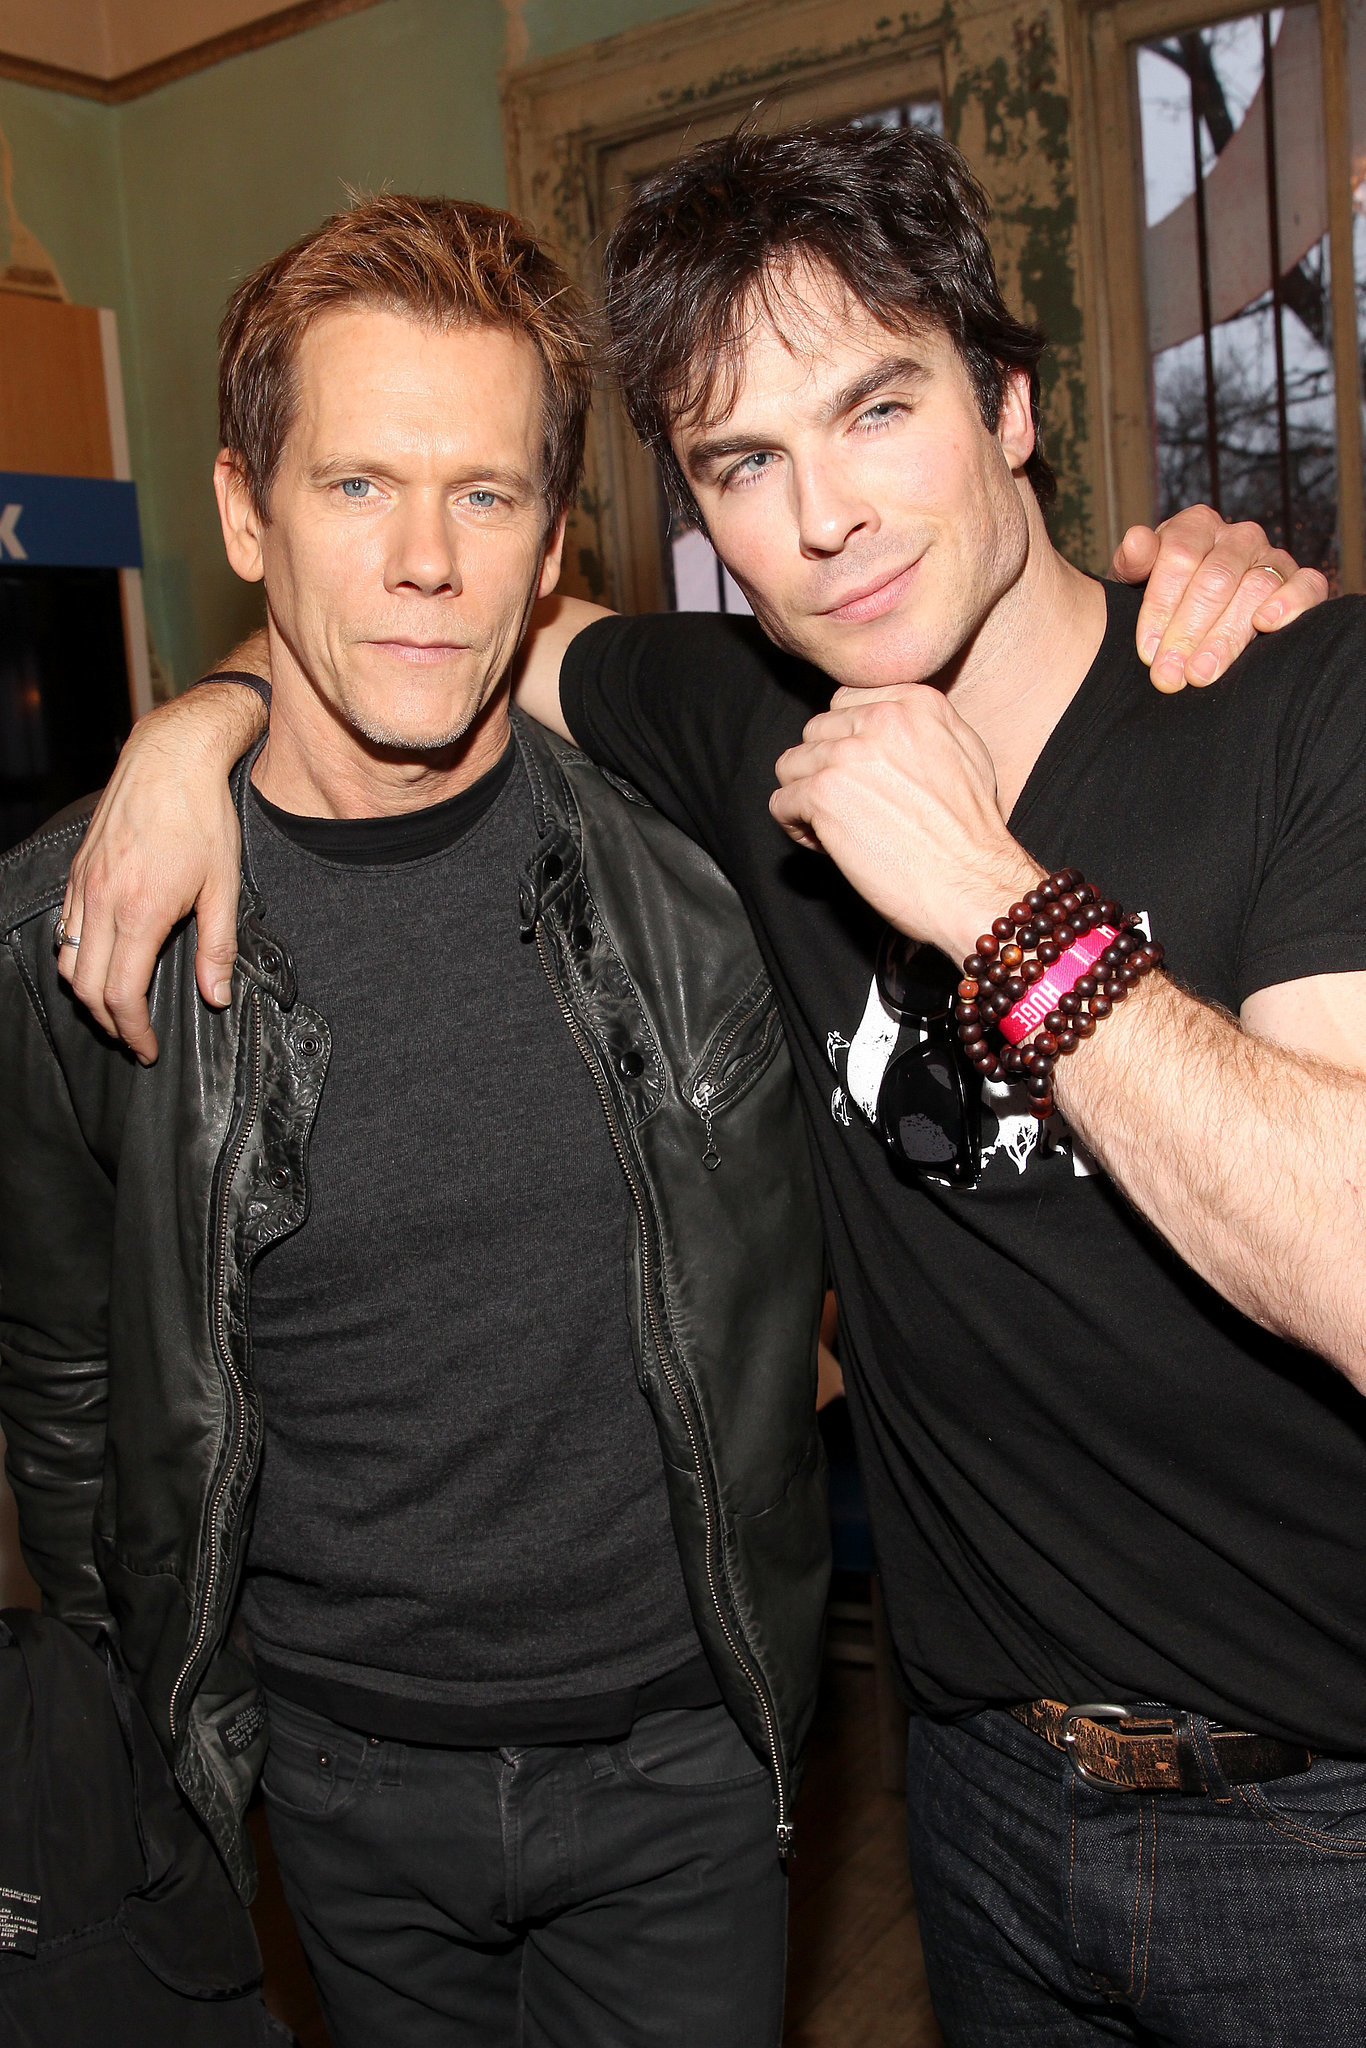 Ian Somerhalder and Kevin Bacon linked up at SXSW on Saturday.